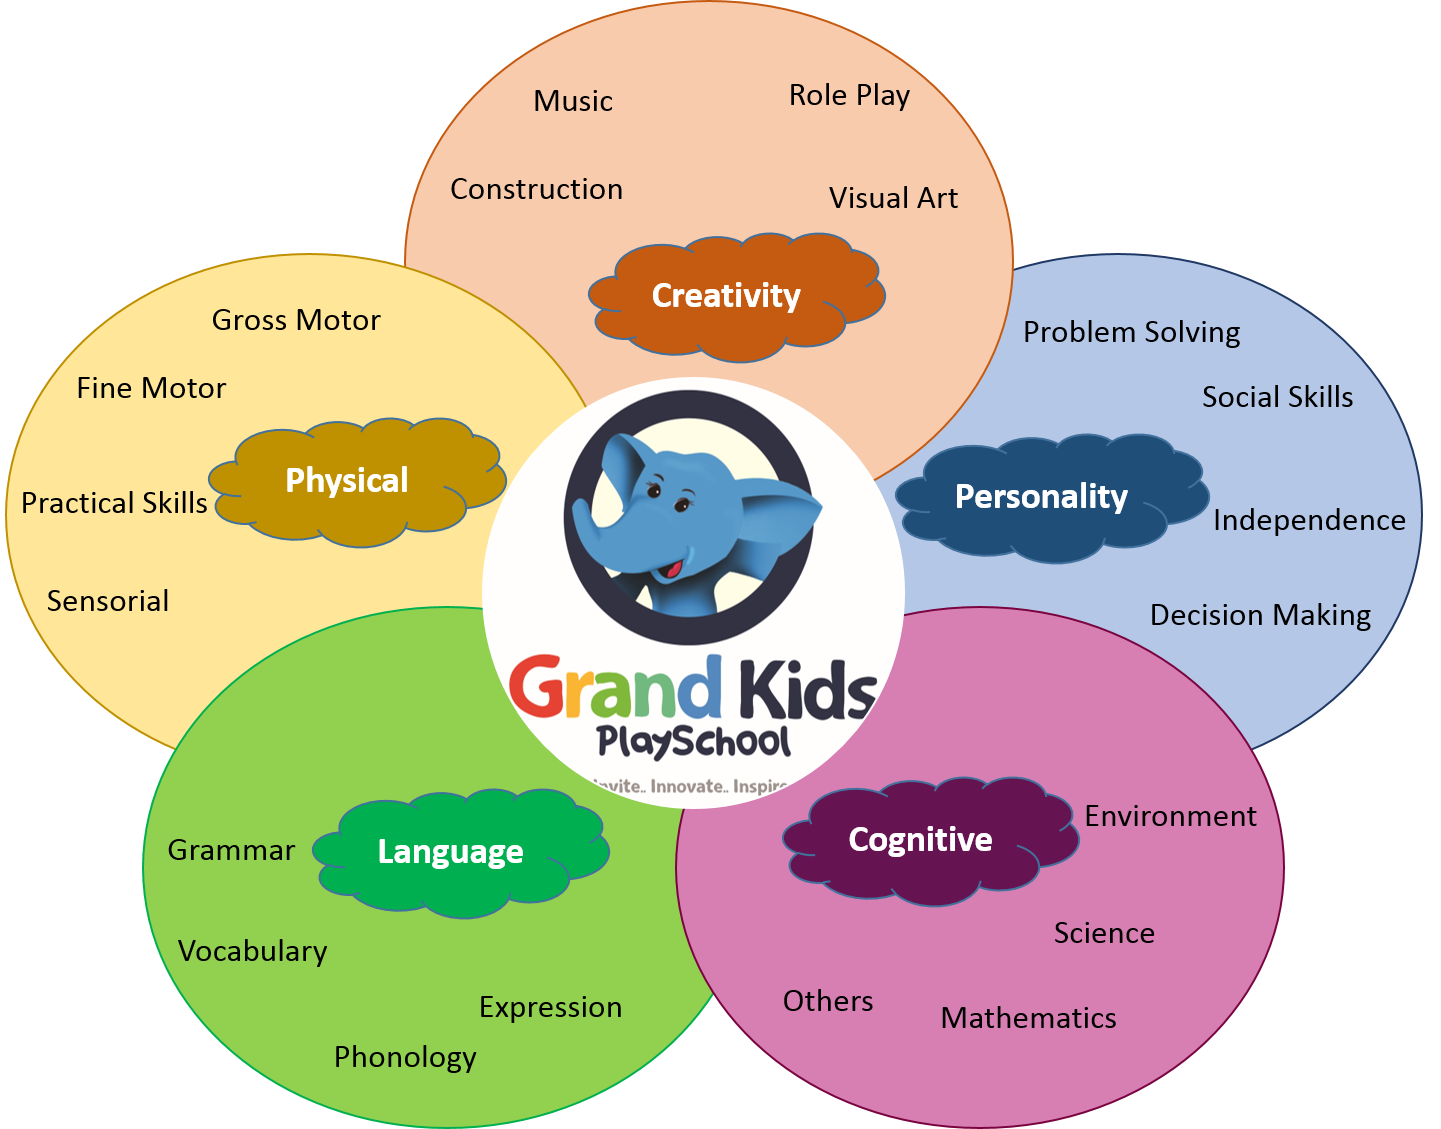 Grand Kids' vision of education